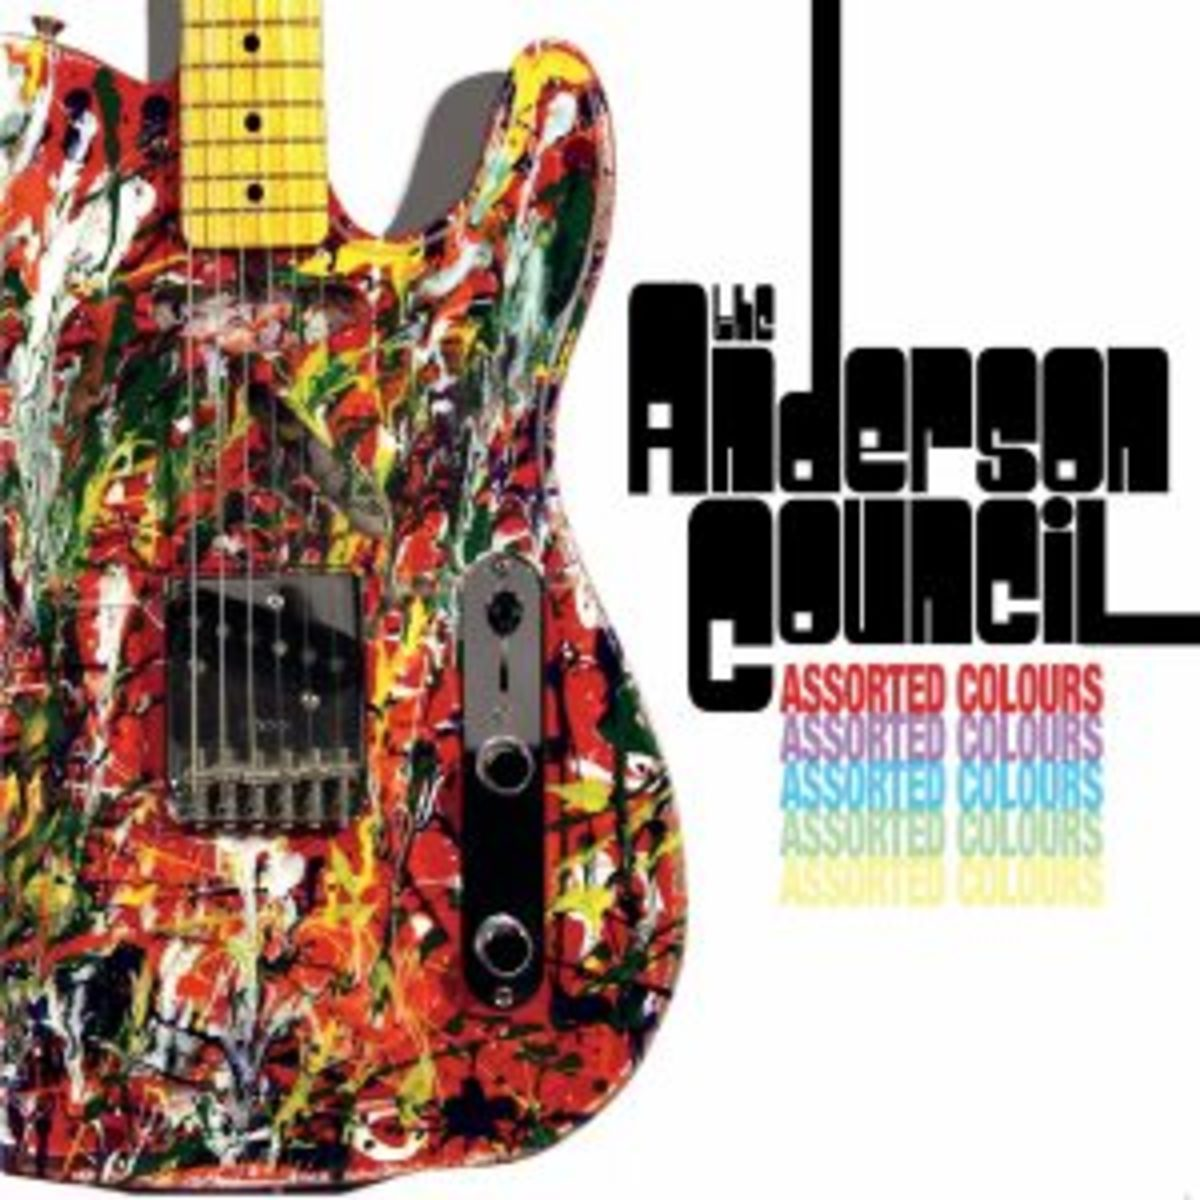 anderson_assorted